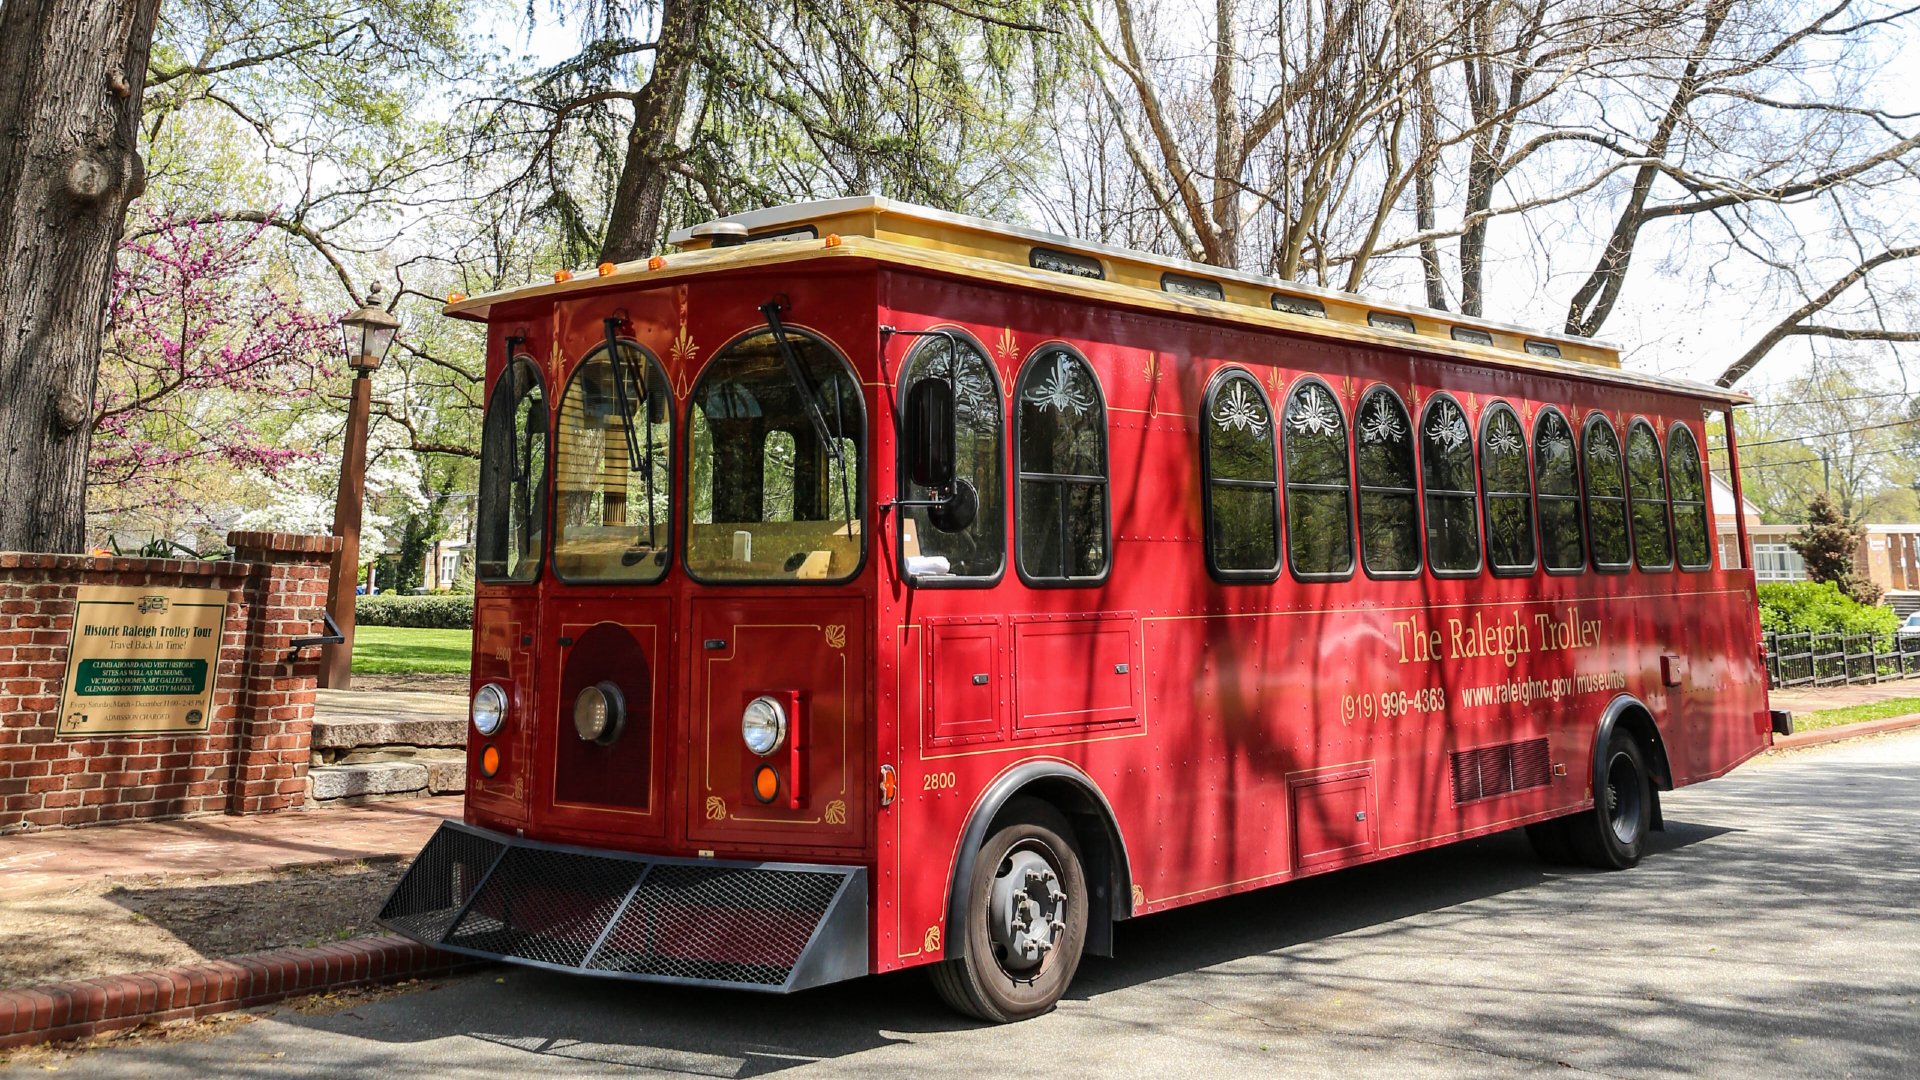 Raleigh trolley outside of the Mordecai Historic Park